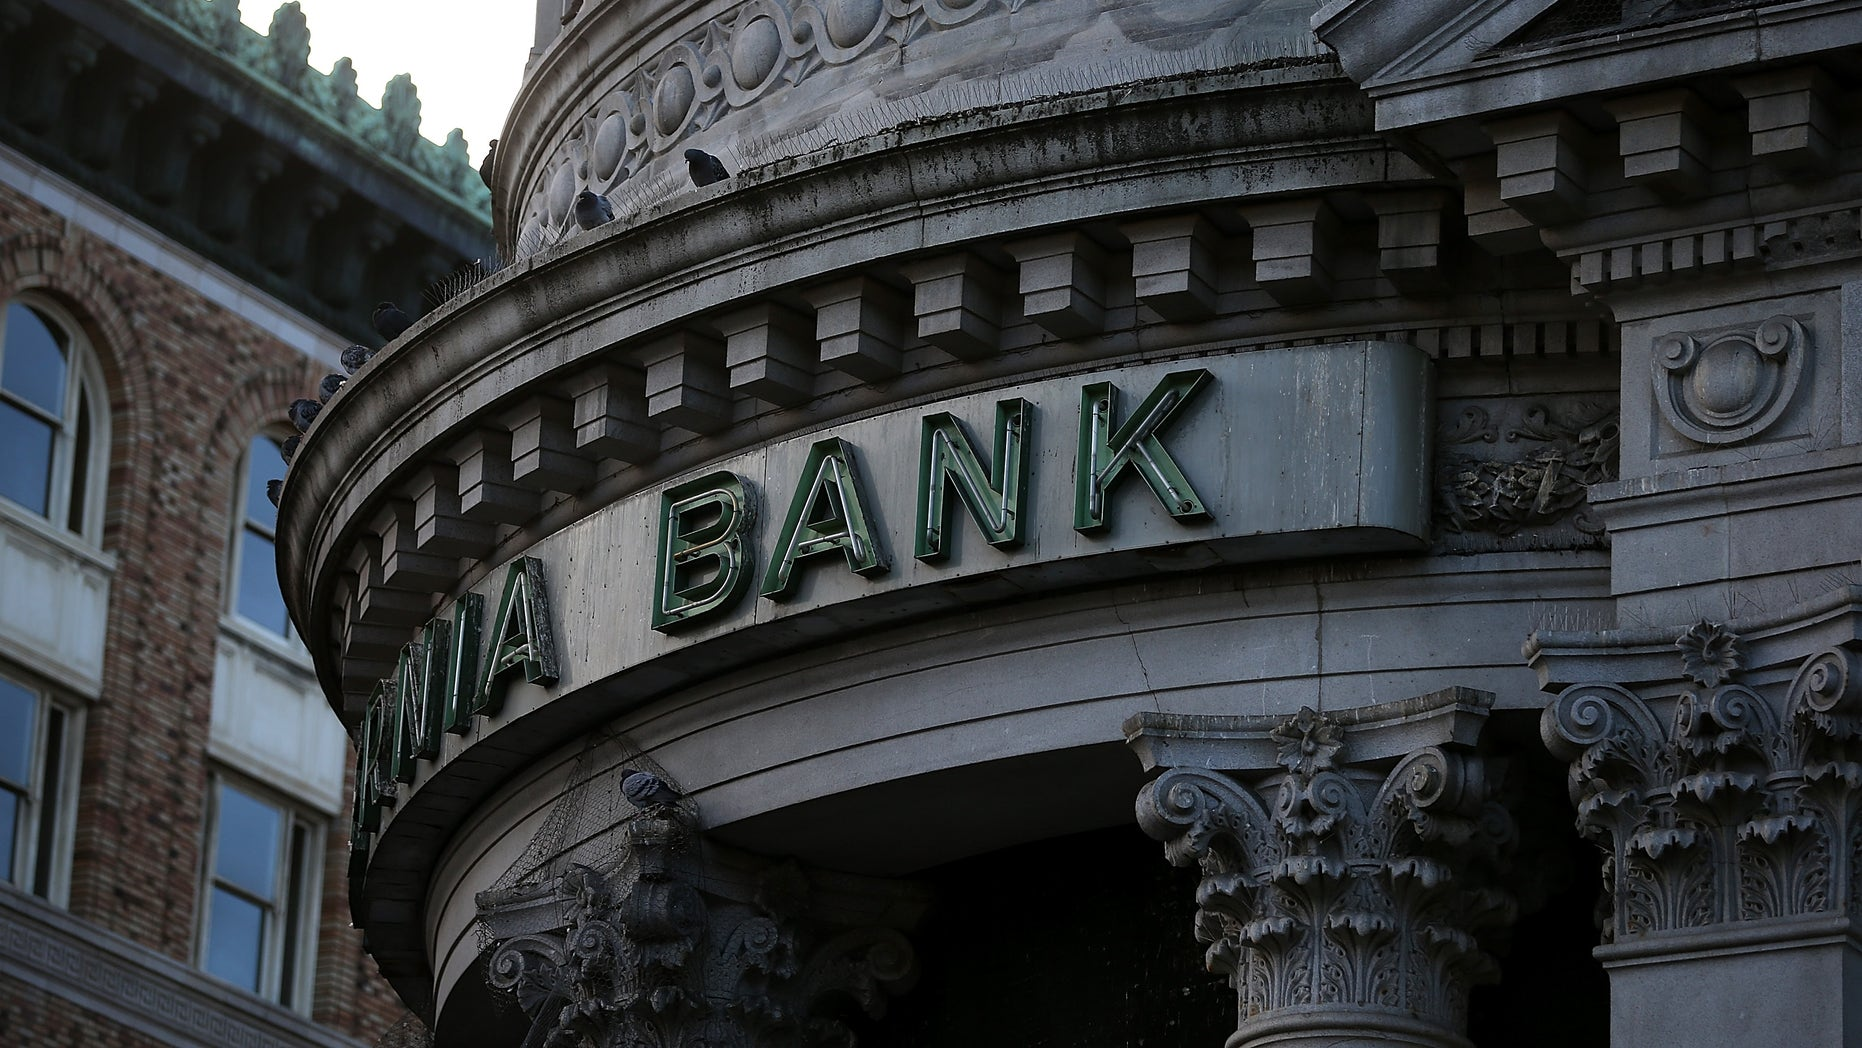 SAN FRANCISCO, CA - DECEMBER 03:  A sign remains on the exterior of a shuttered Hibernia Bank on December 3, 2013 in San Francisco, California.  According to the Federal Deposit Insurance Corp., the number of federally insured  banking institutions in the United States has shrunk to 6,891, down from a high of over 18,000. A majority of the decline occured between 1984 and 2011 with over 10,000 banks failing, or merging with bigger institutions.  (Photo by Justin Sullivan/Getty Images)